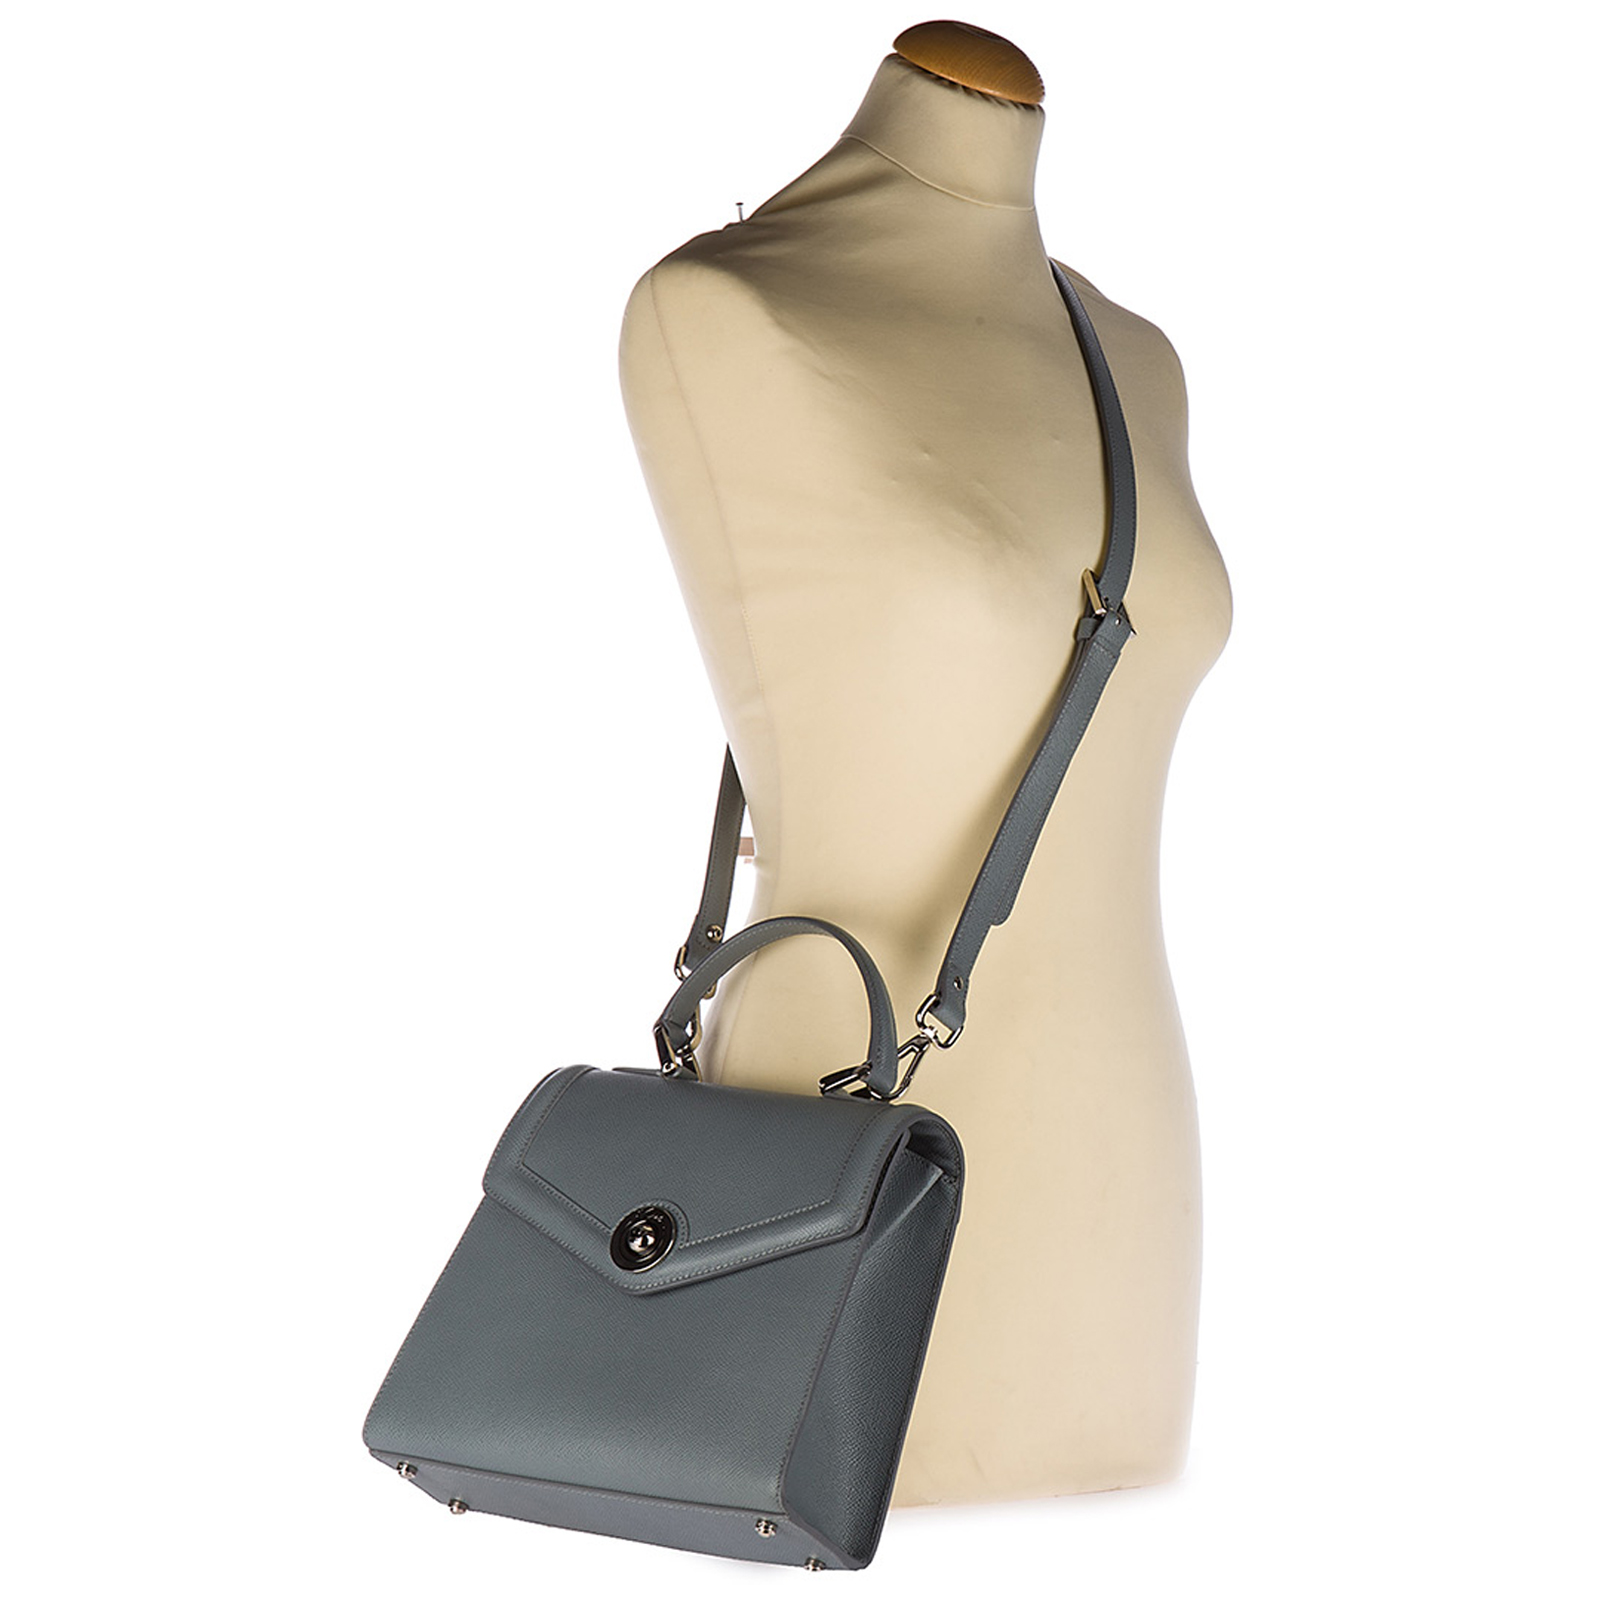 Women's leather handbag shopping bag purse monaco